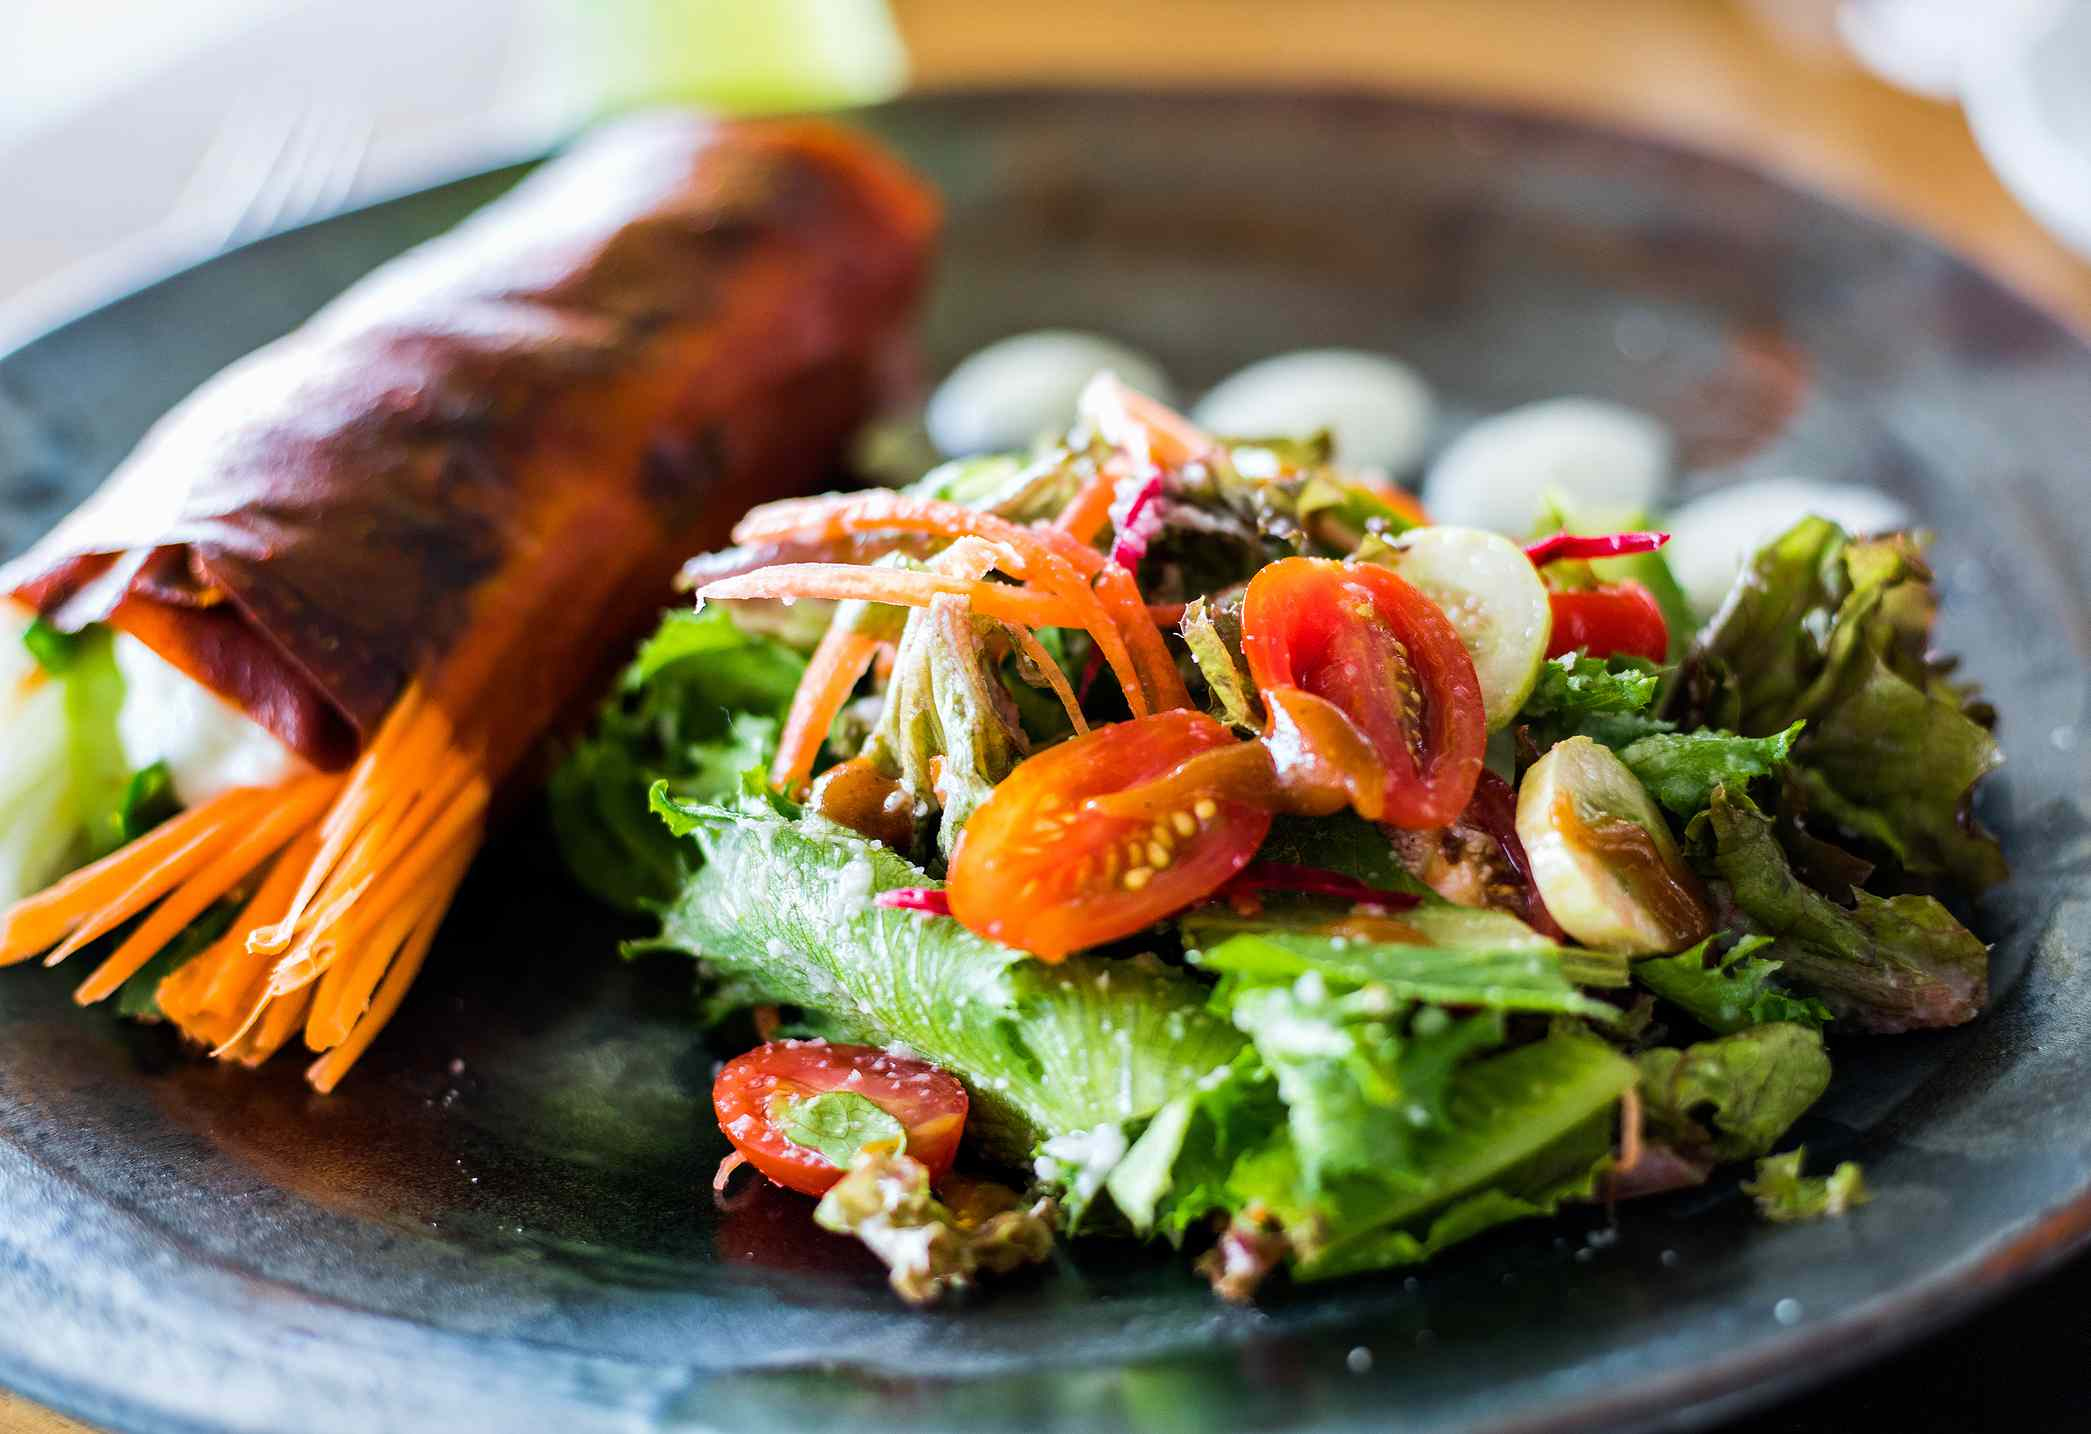 Red pepper wrap and salad